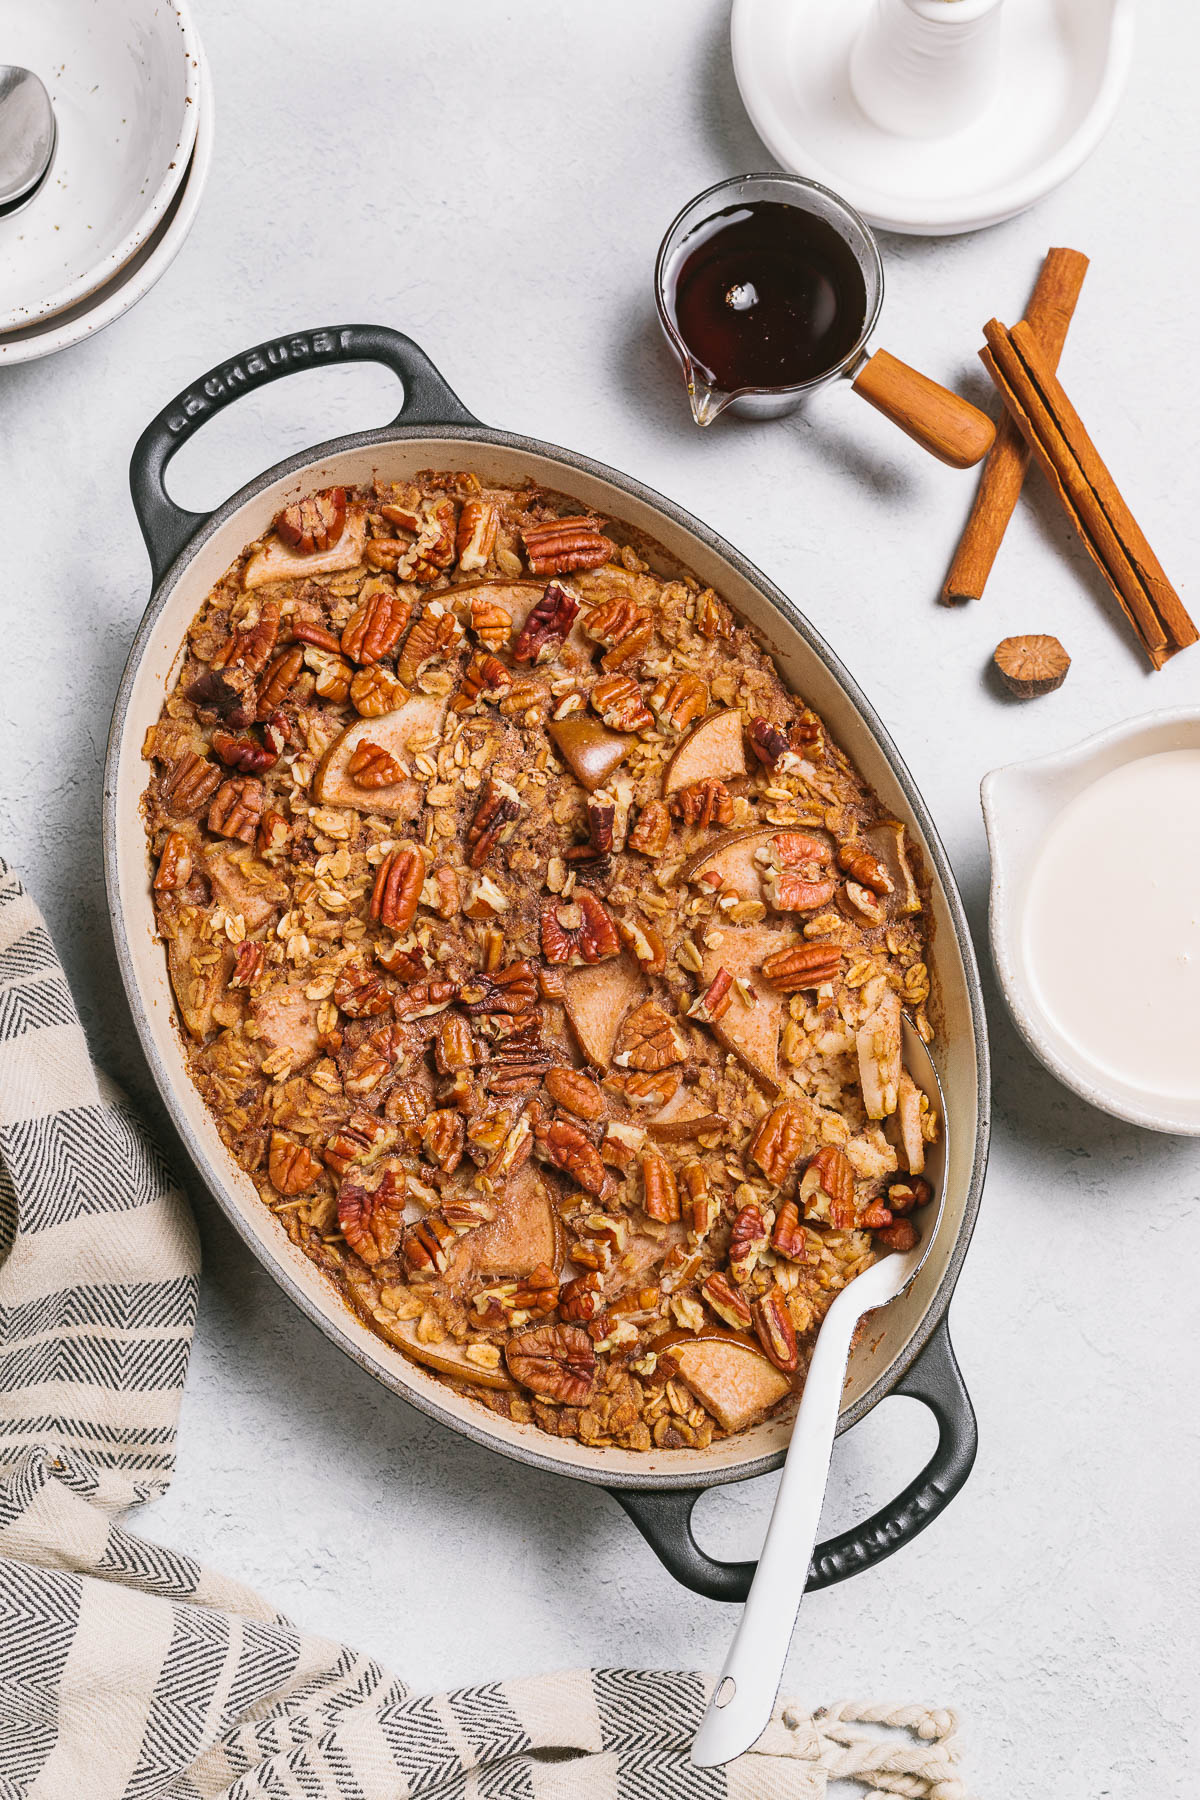 An oval baking dish of vegan baked oatmeal with pears and pecans.